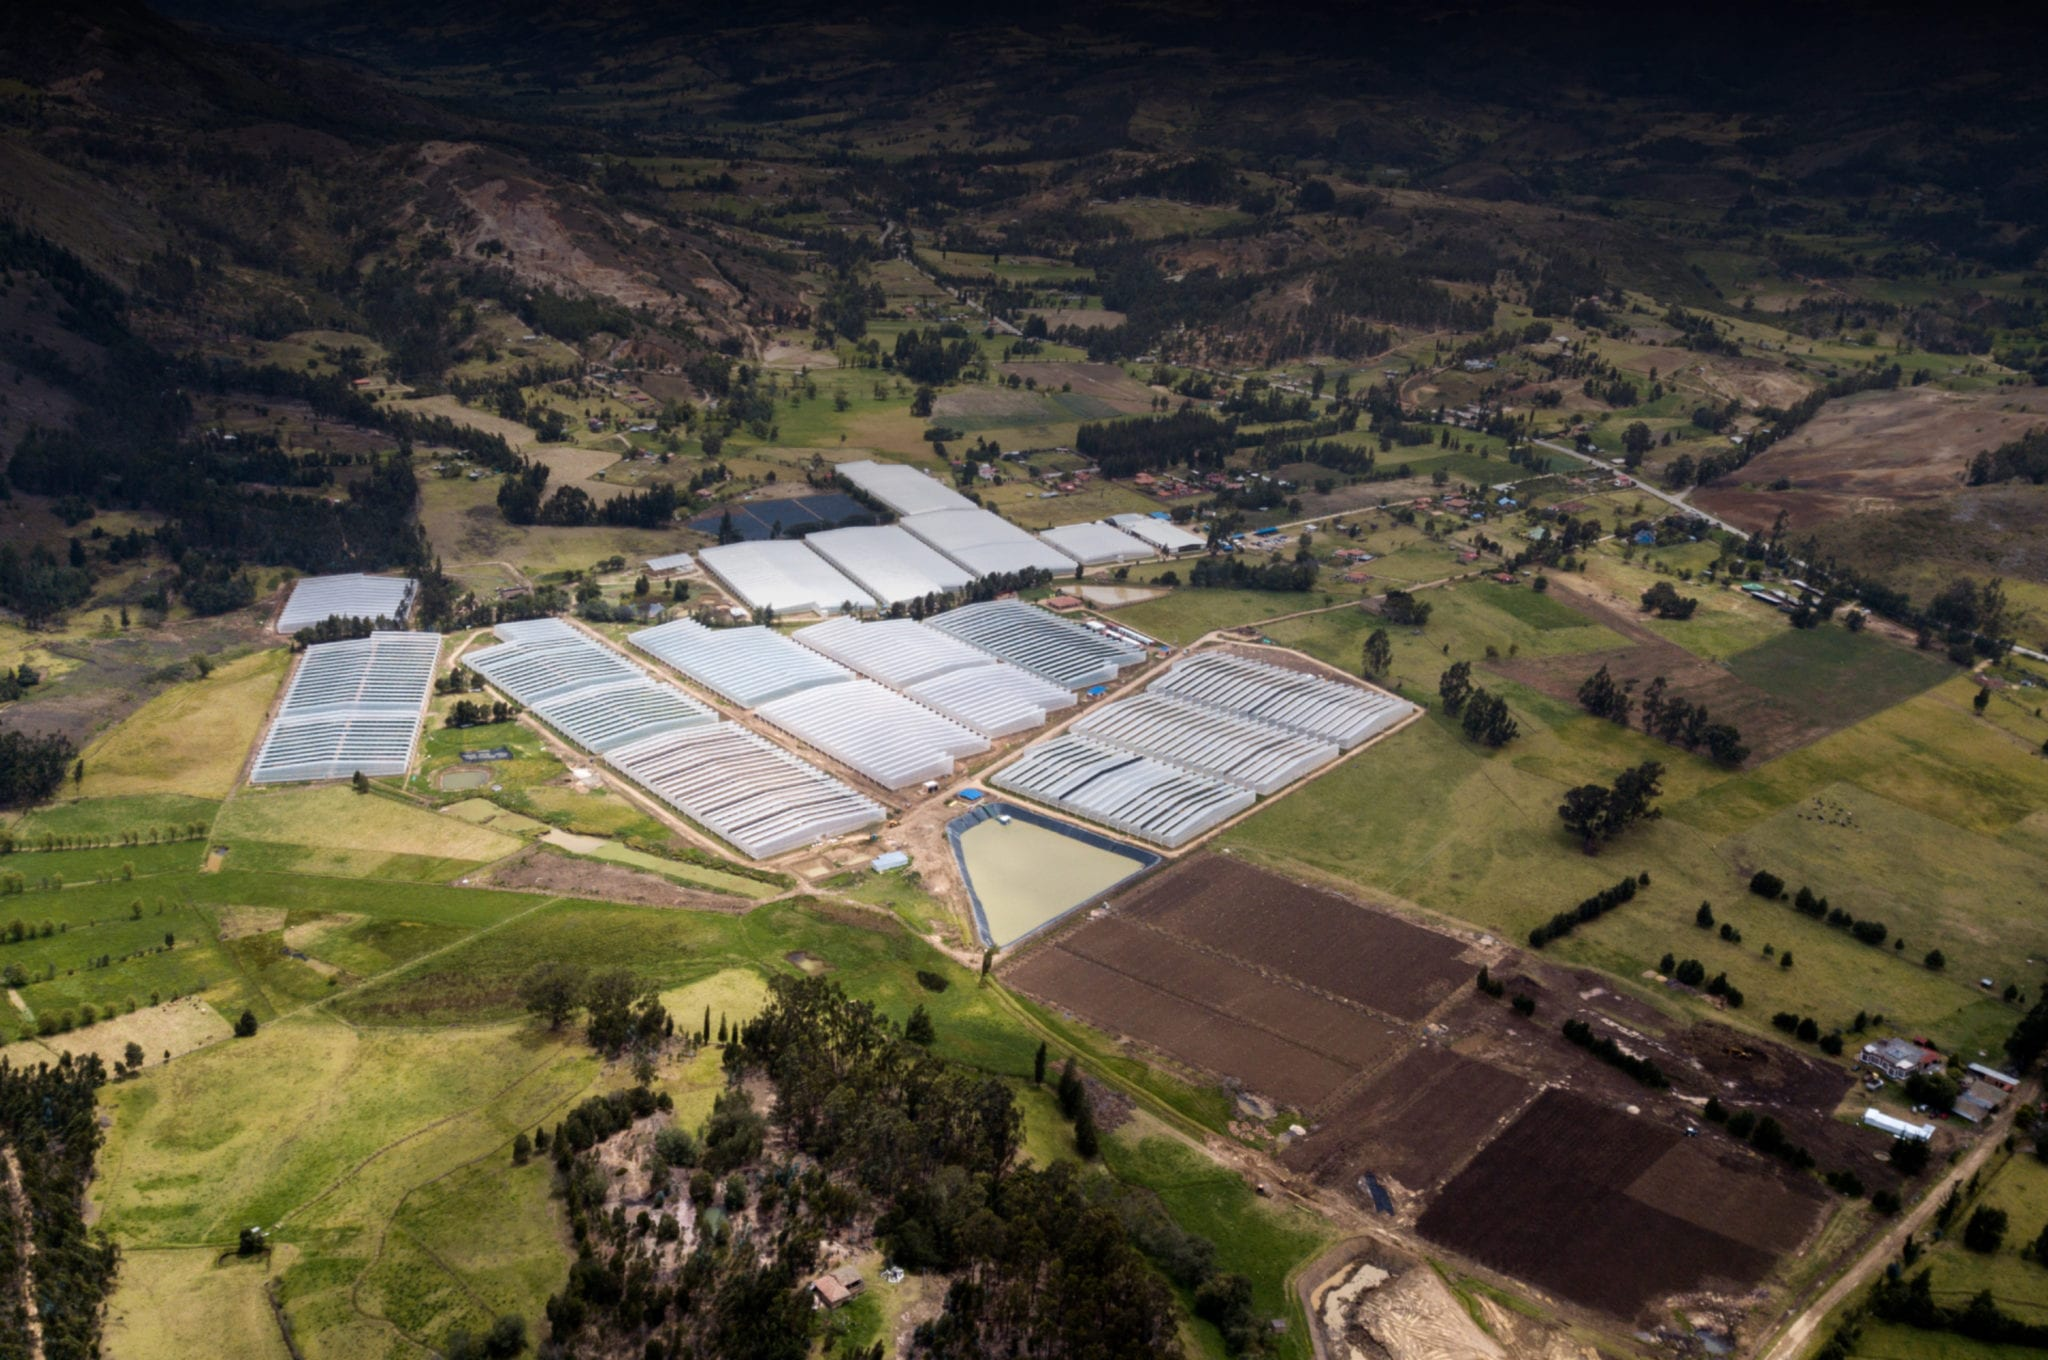 Canopy keeps one toe in Colombia, inks regional supply deal